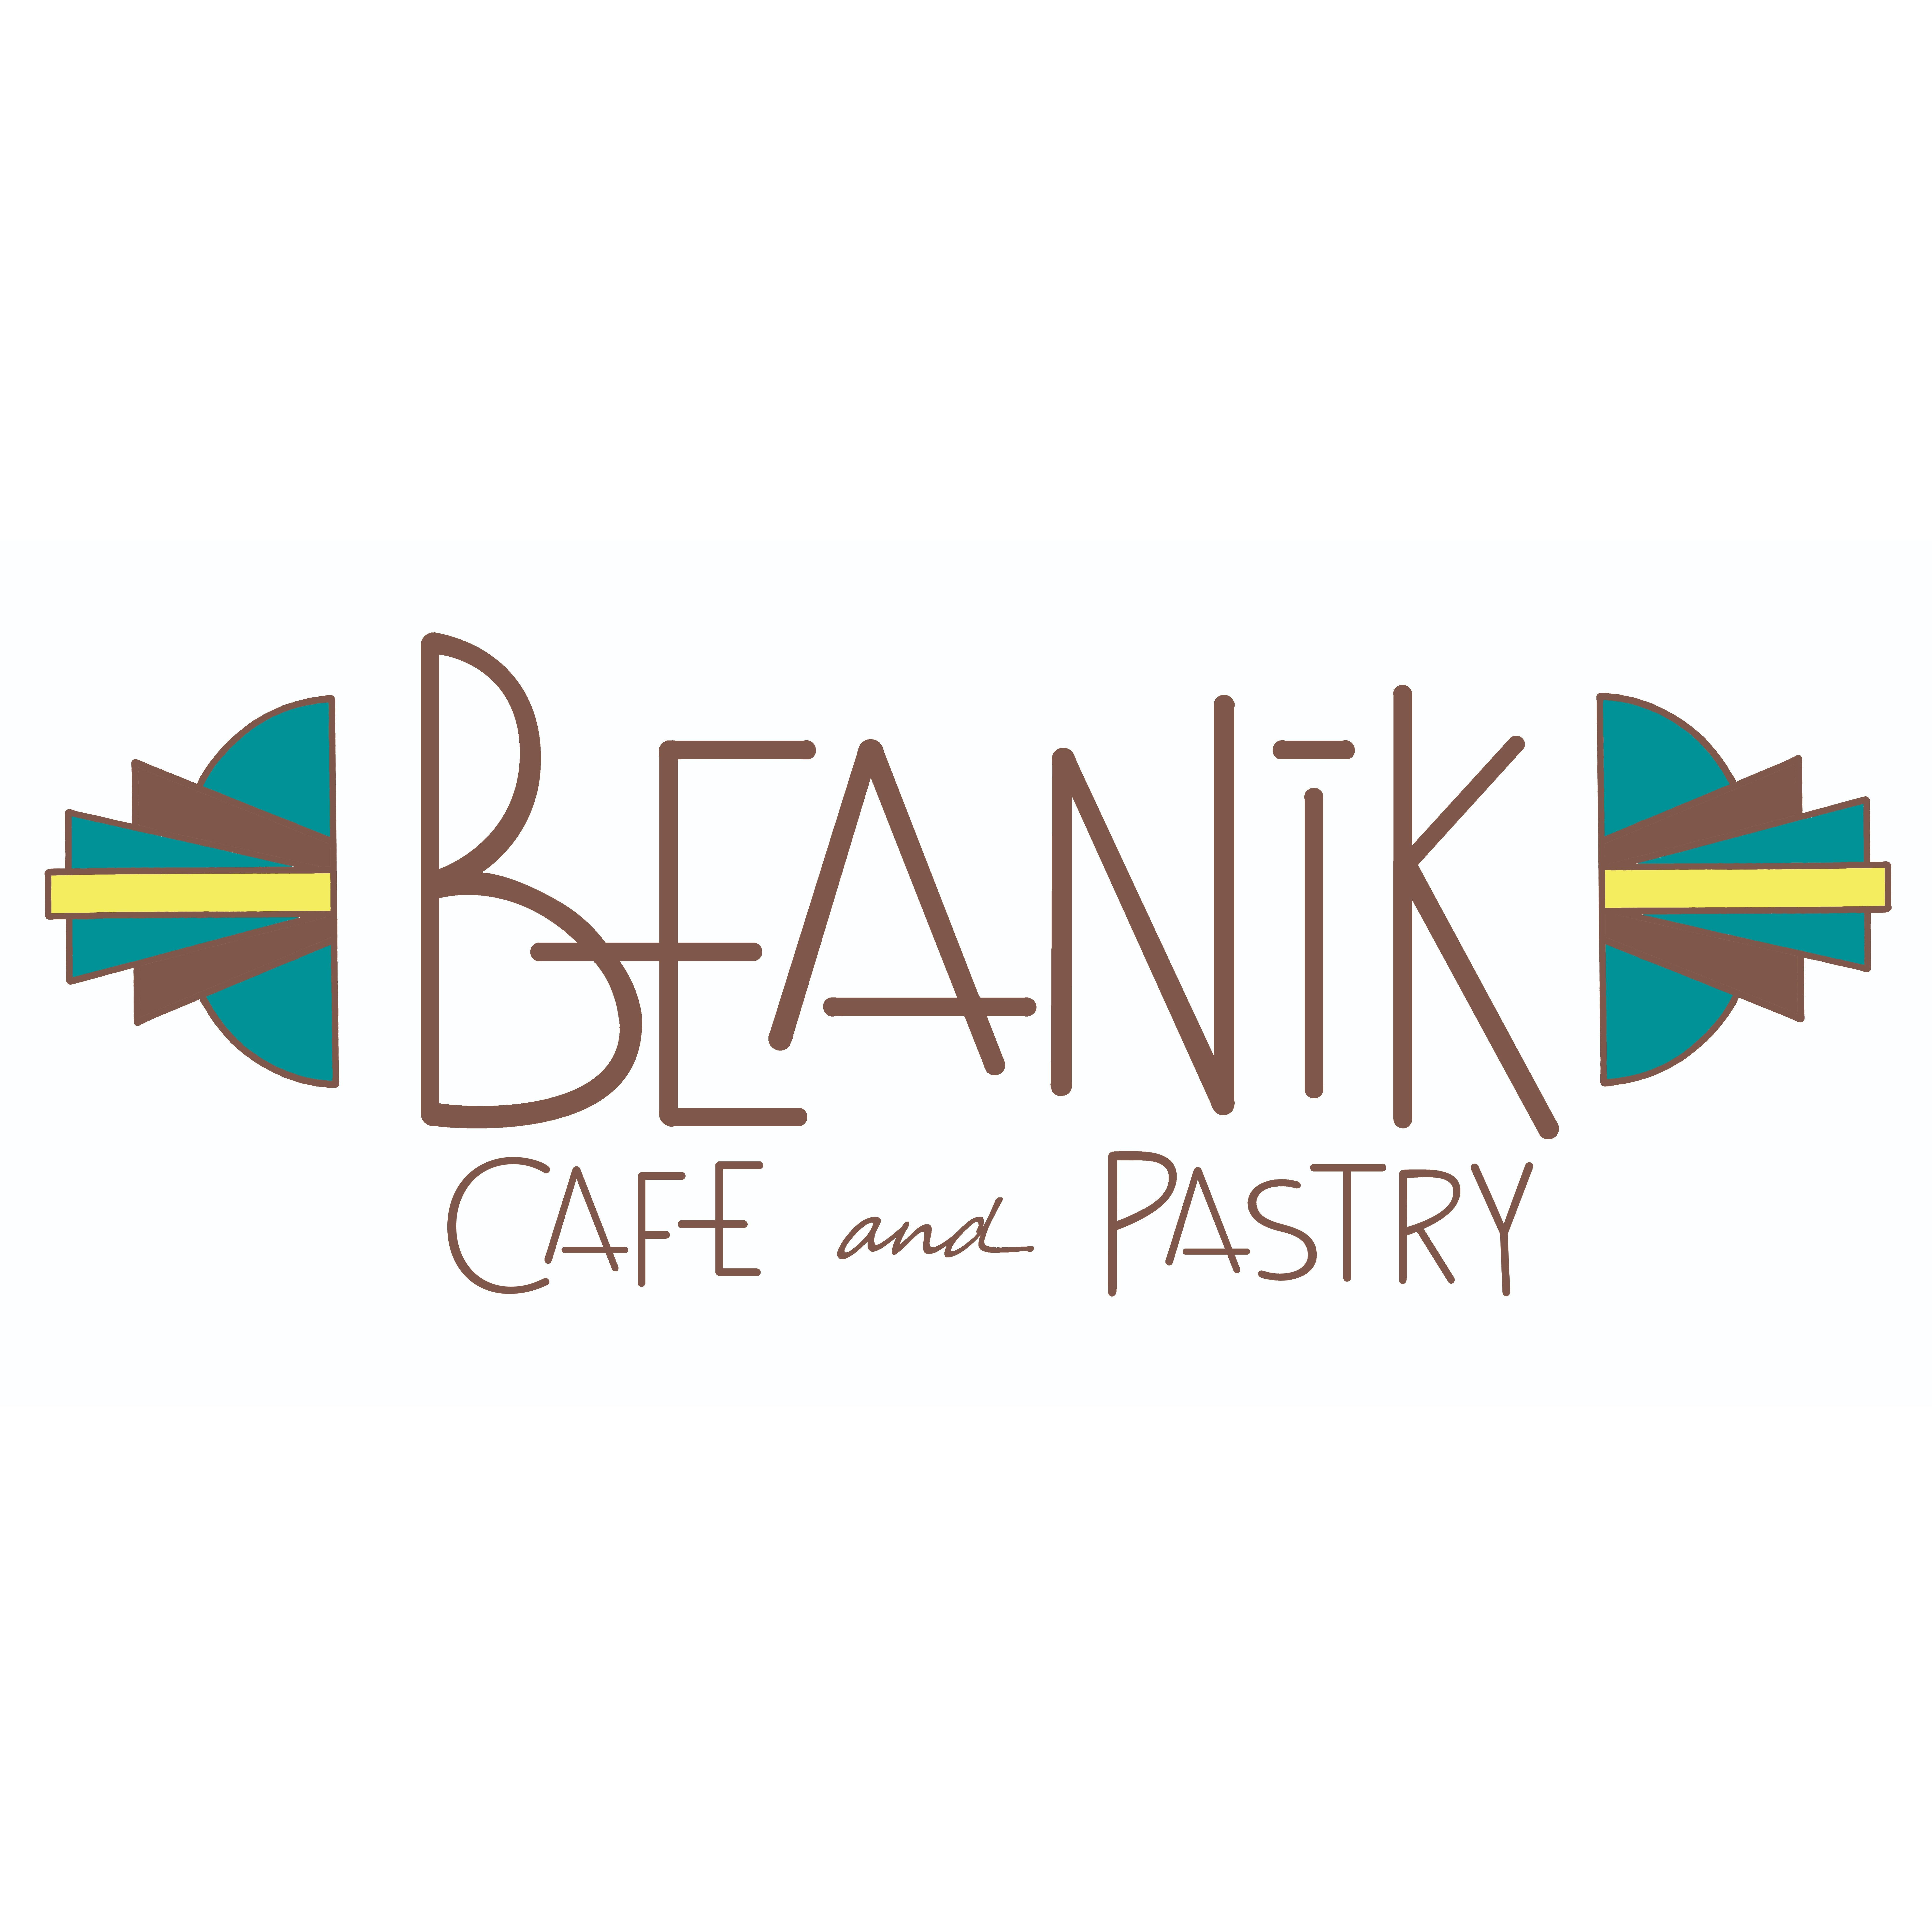 Beanik Cafe & Pastry